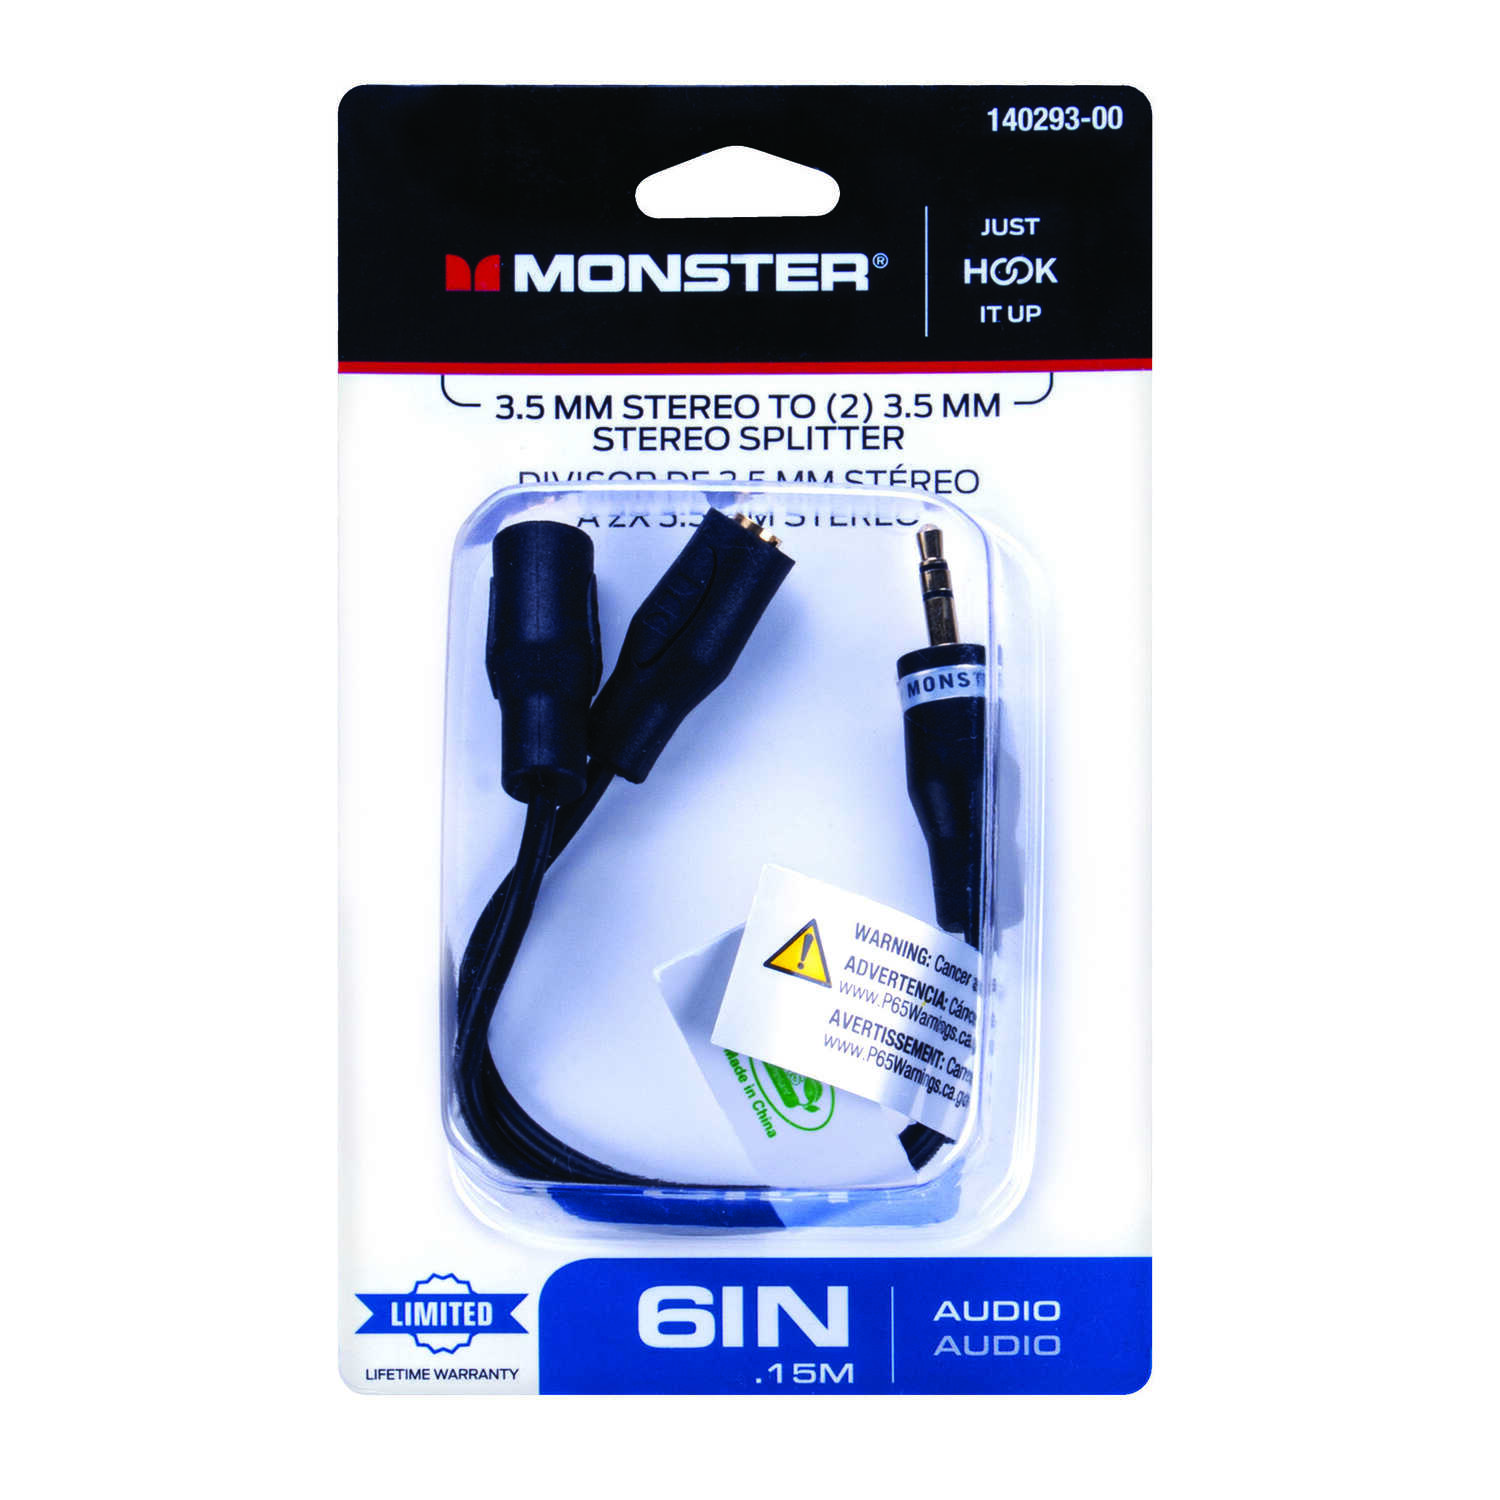 Monster Cable  Just Hook It Up  Stereo Splitter  1 pk 6 in. L